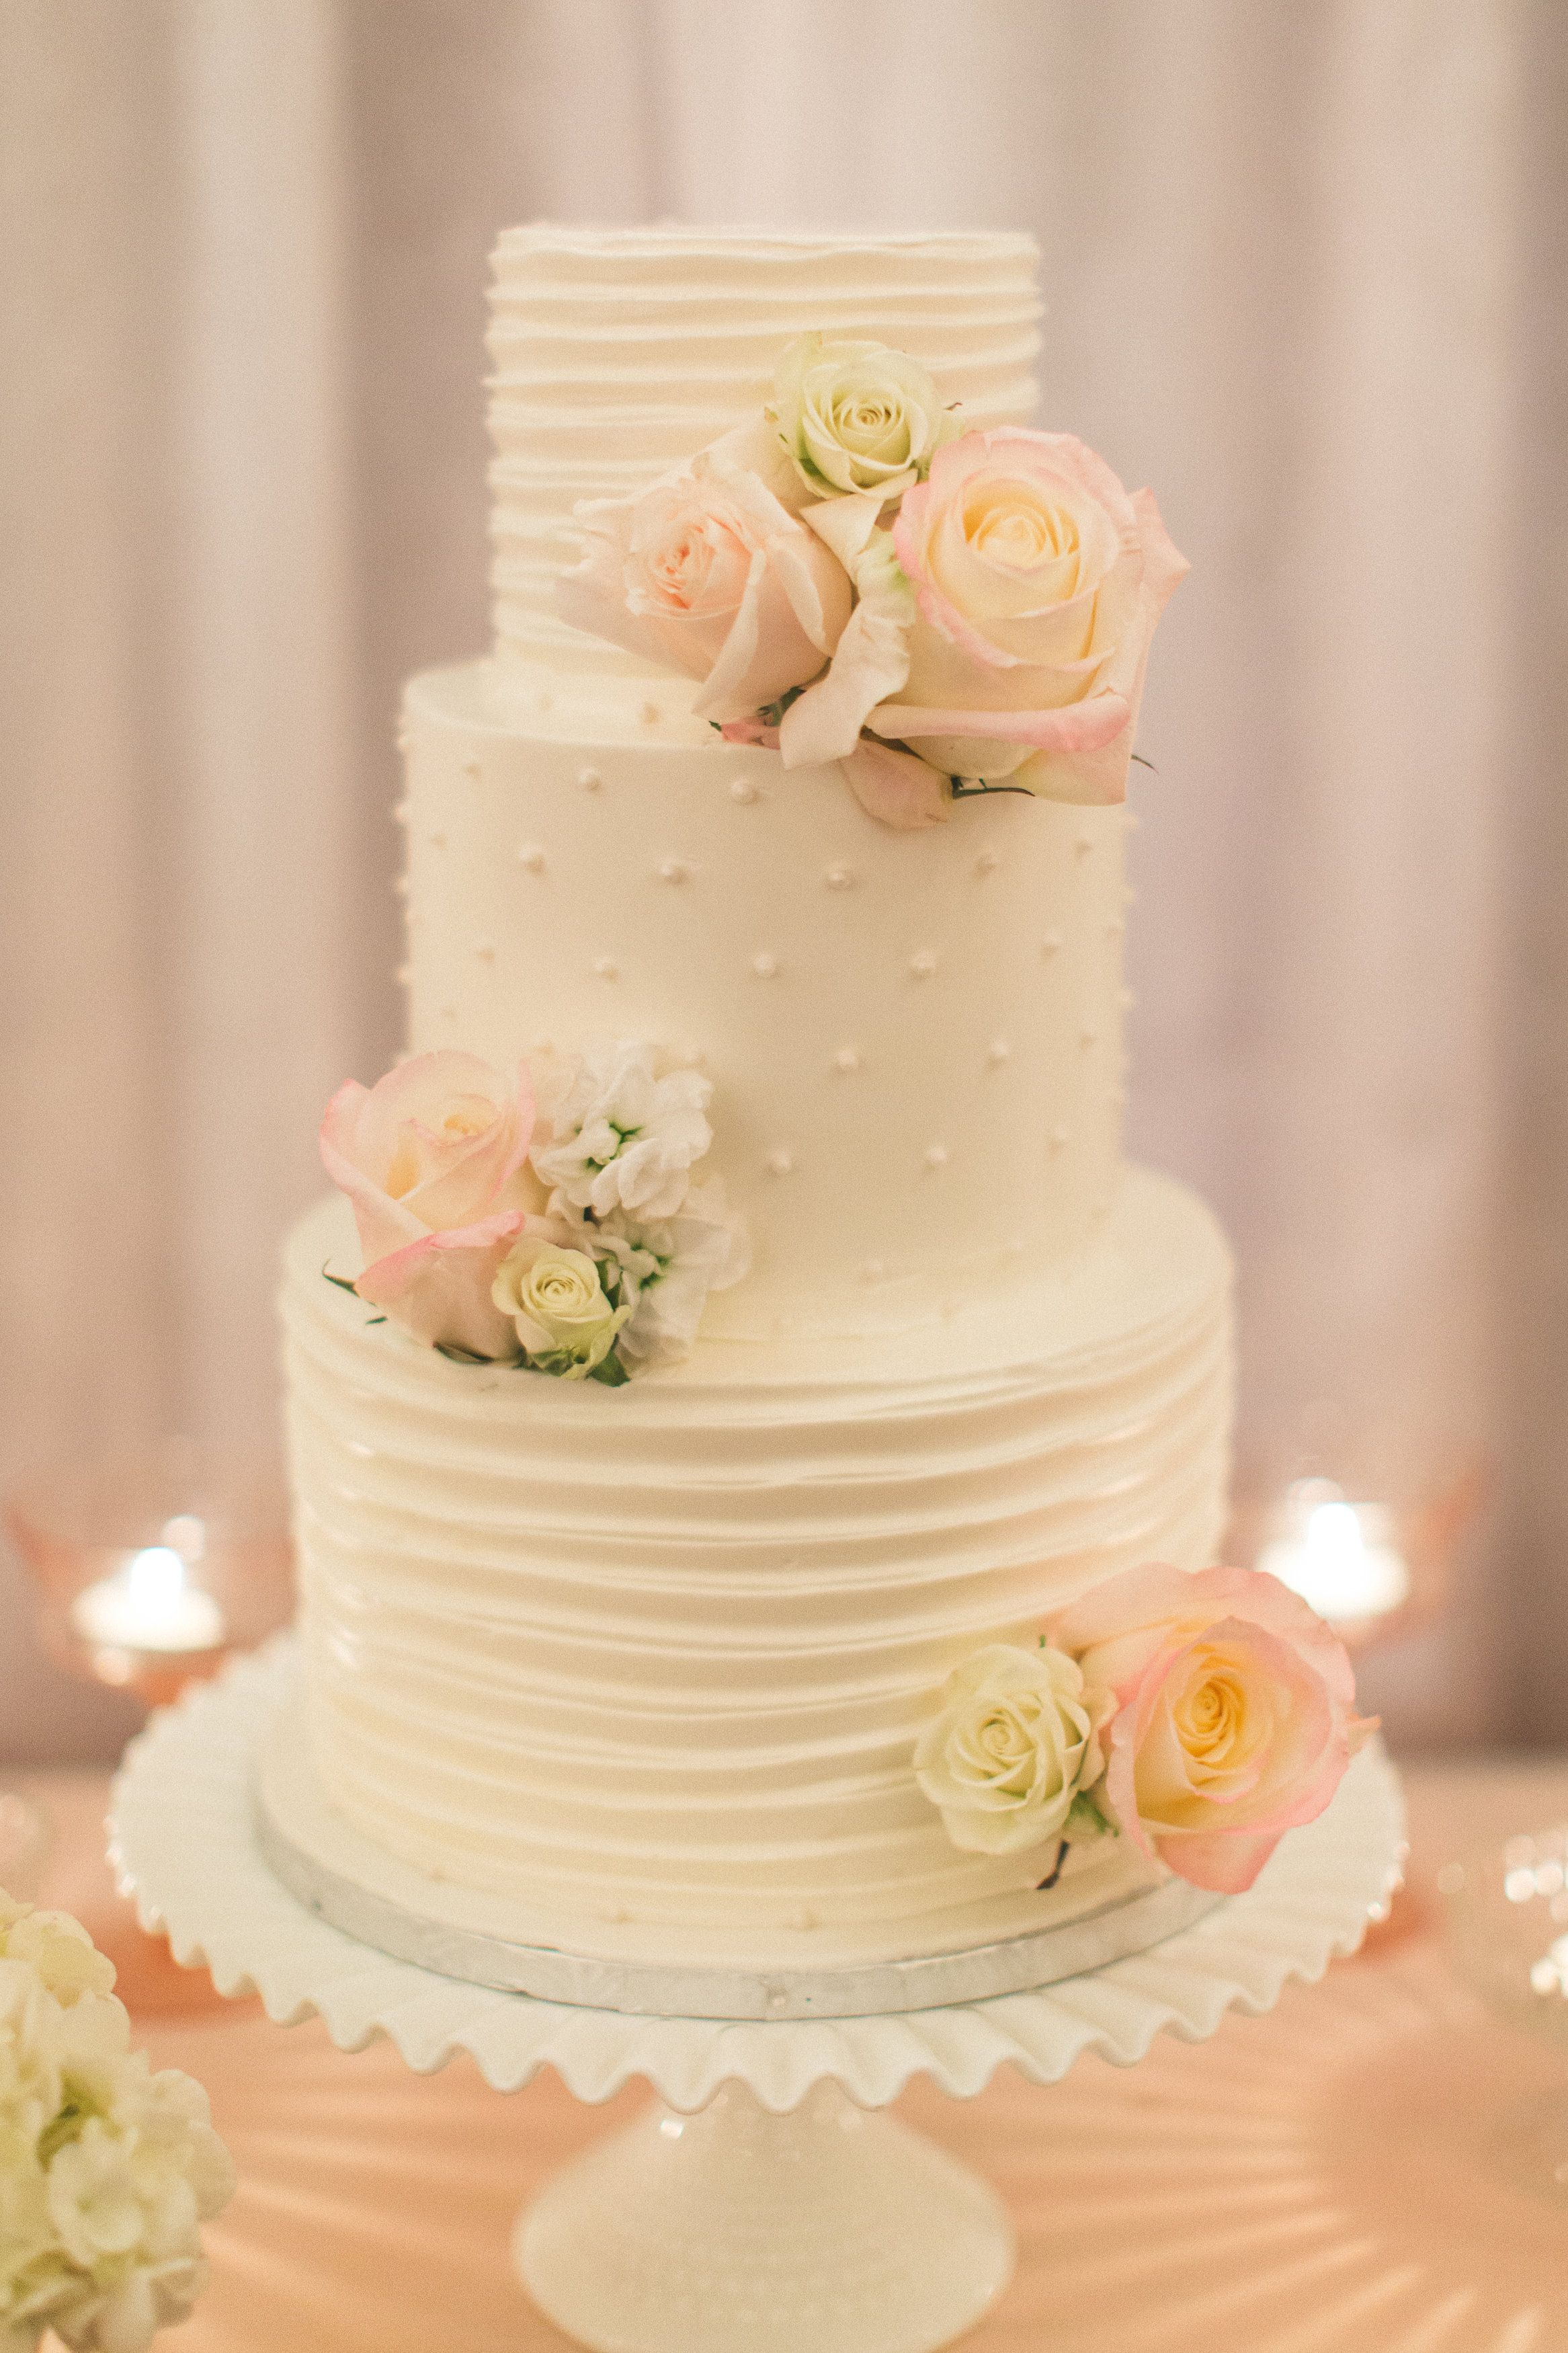 wedding cakes best best 25 wedding cake fresh flowers ideas on 23889